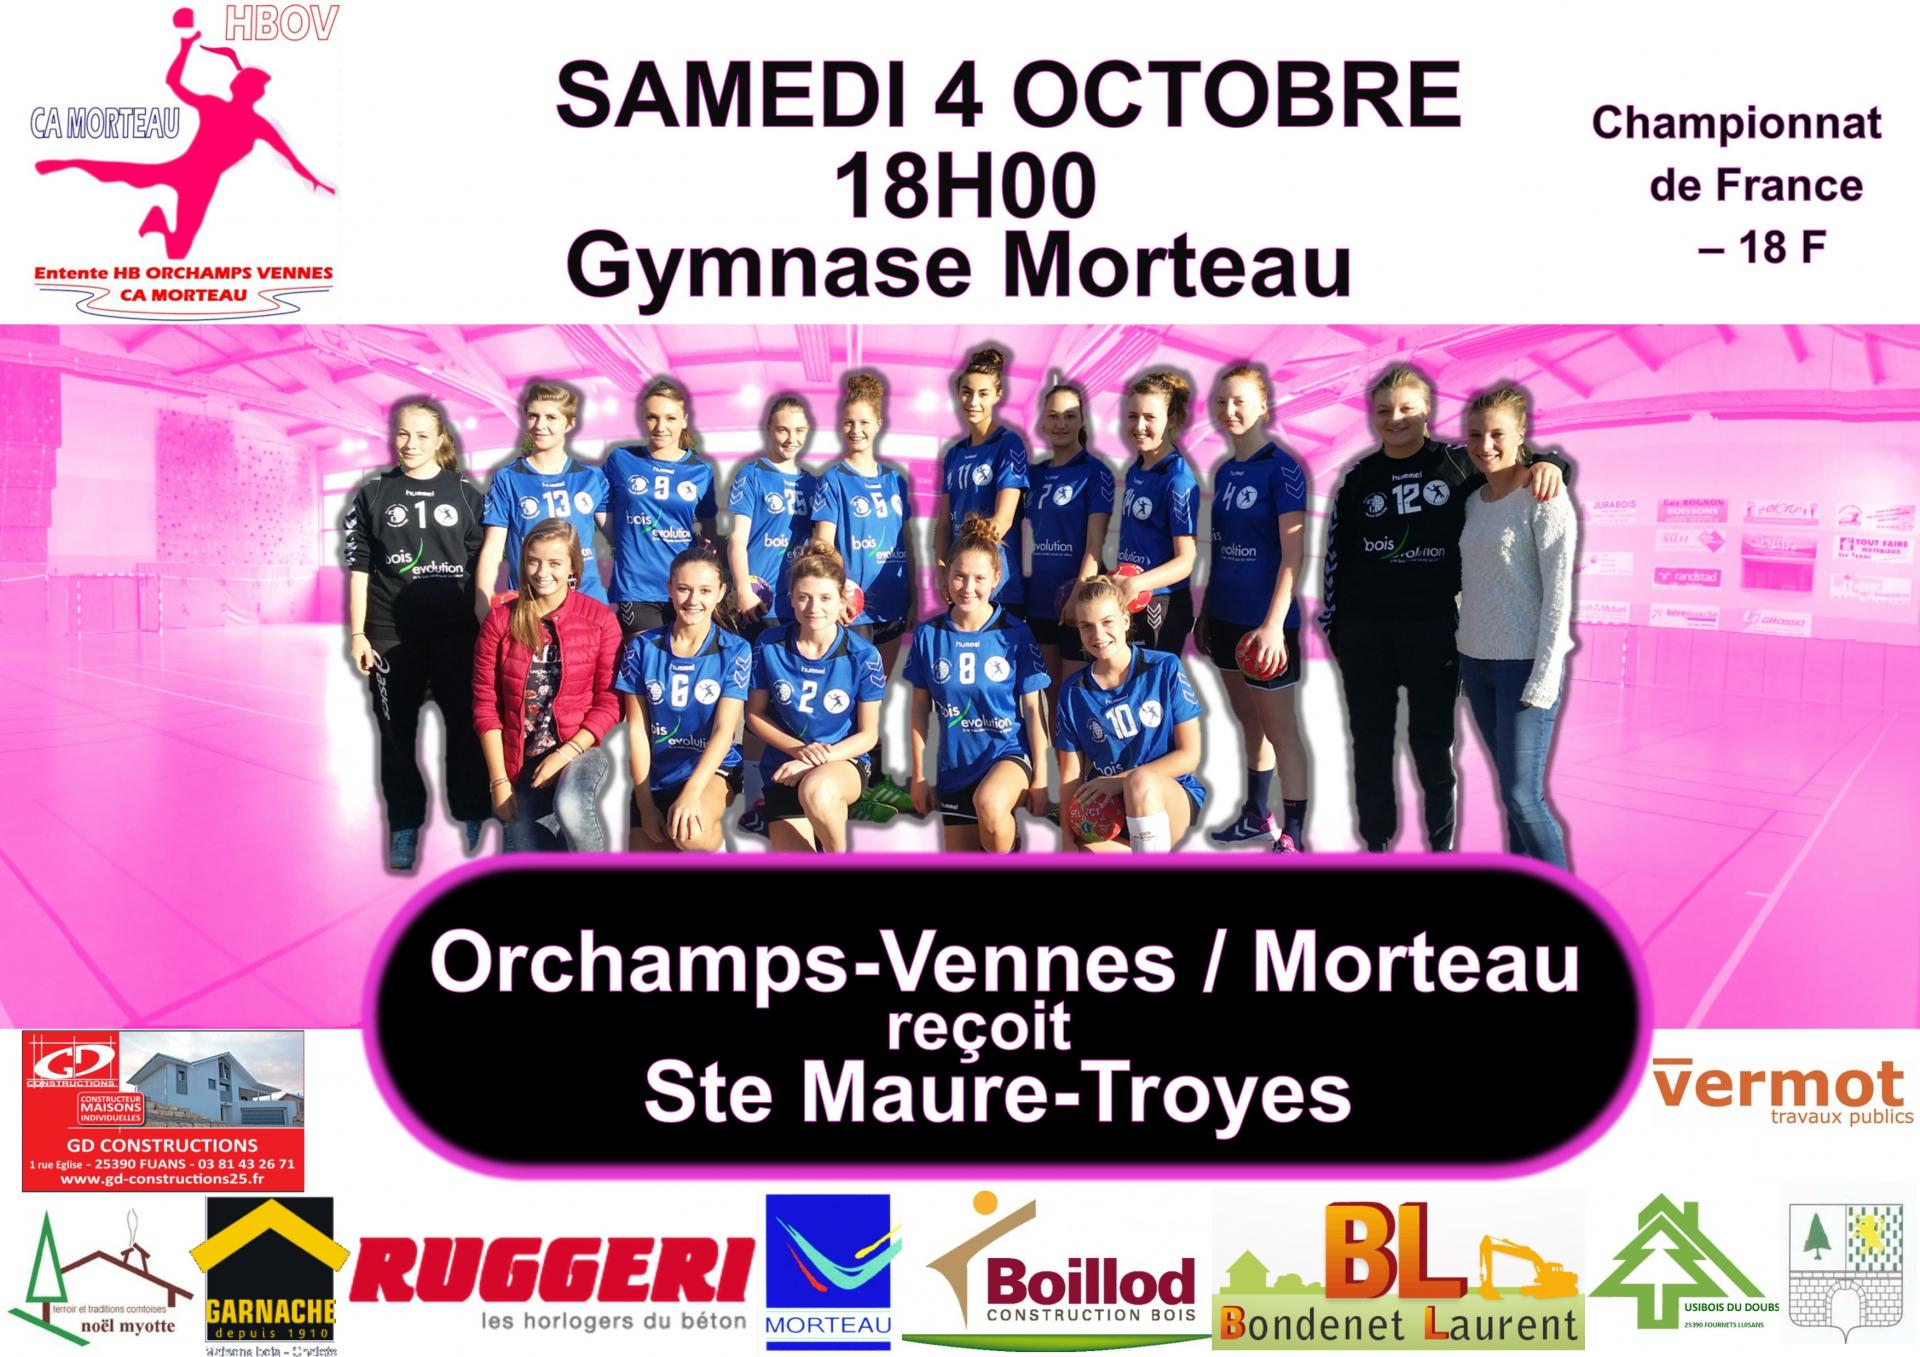 Affiche 18 match 4 octobre